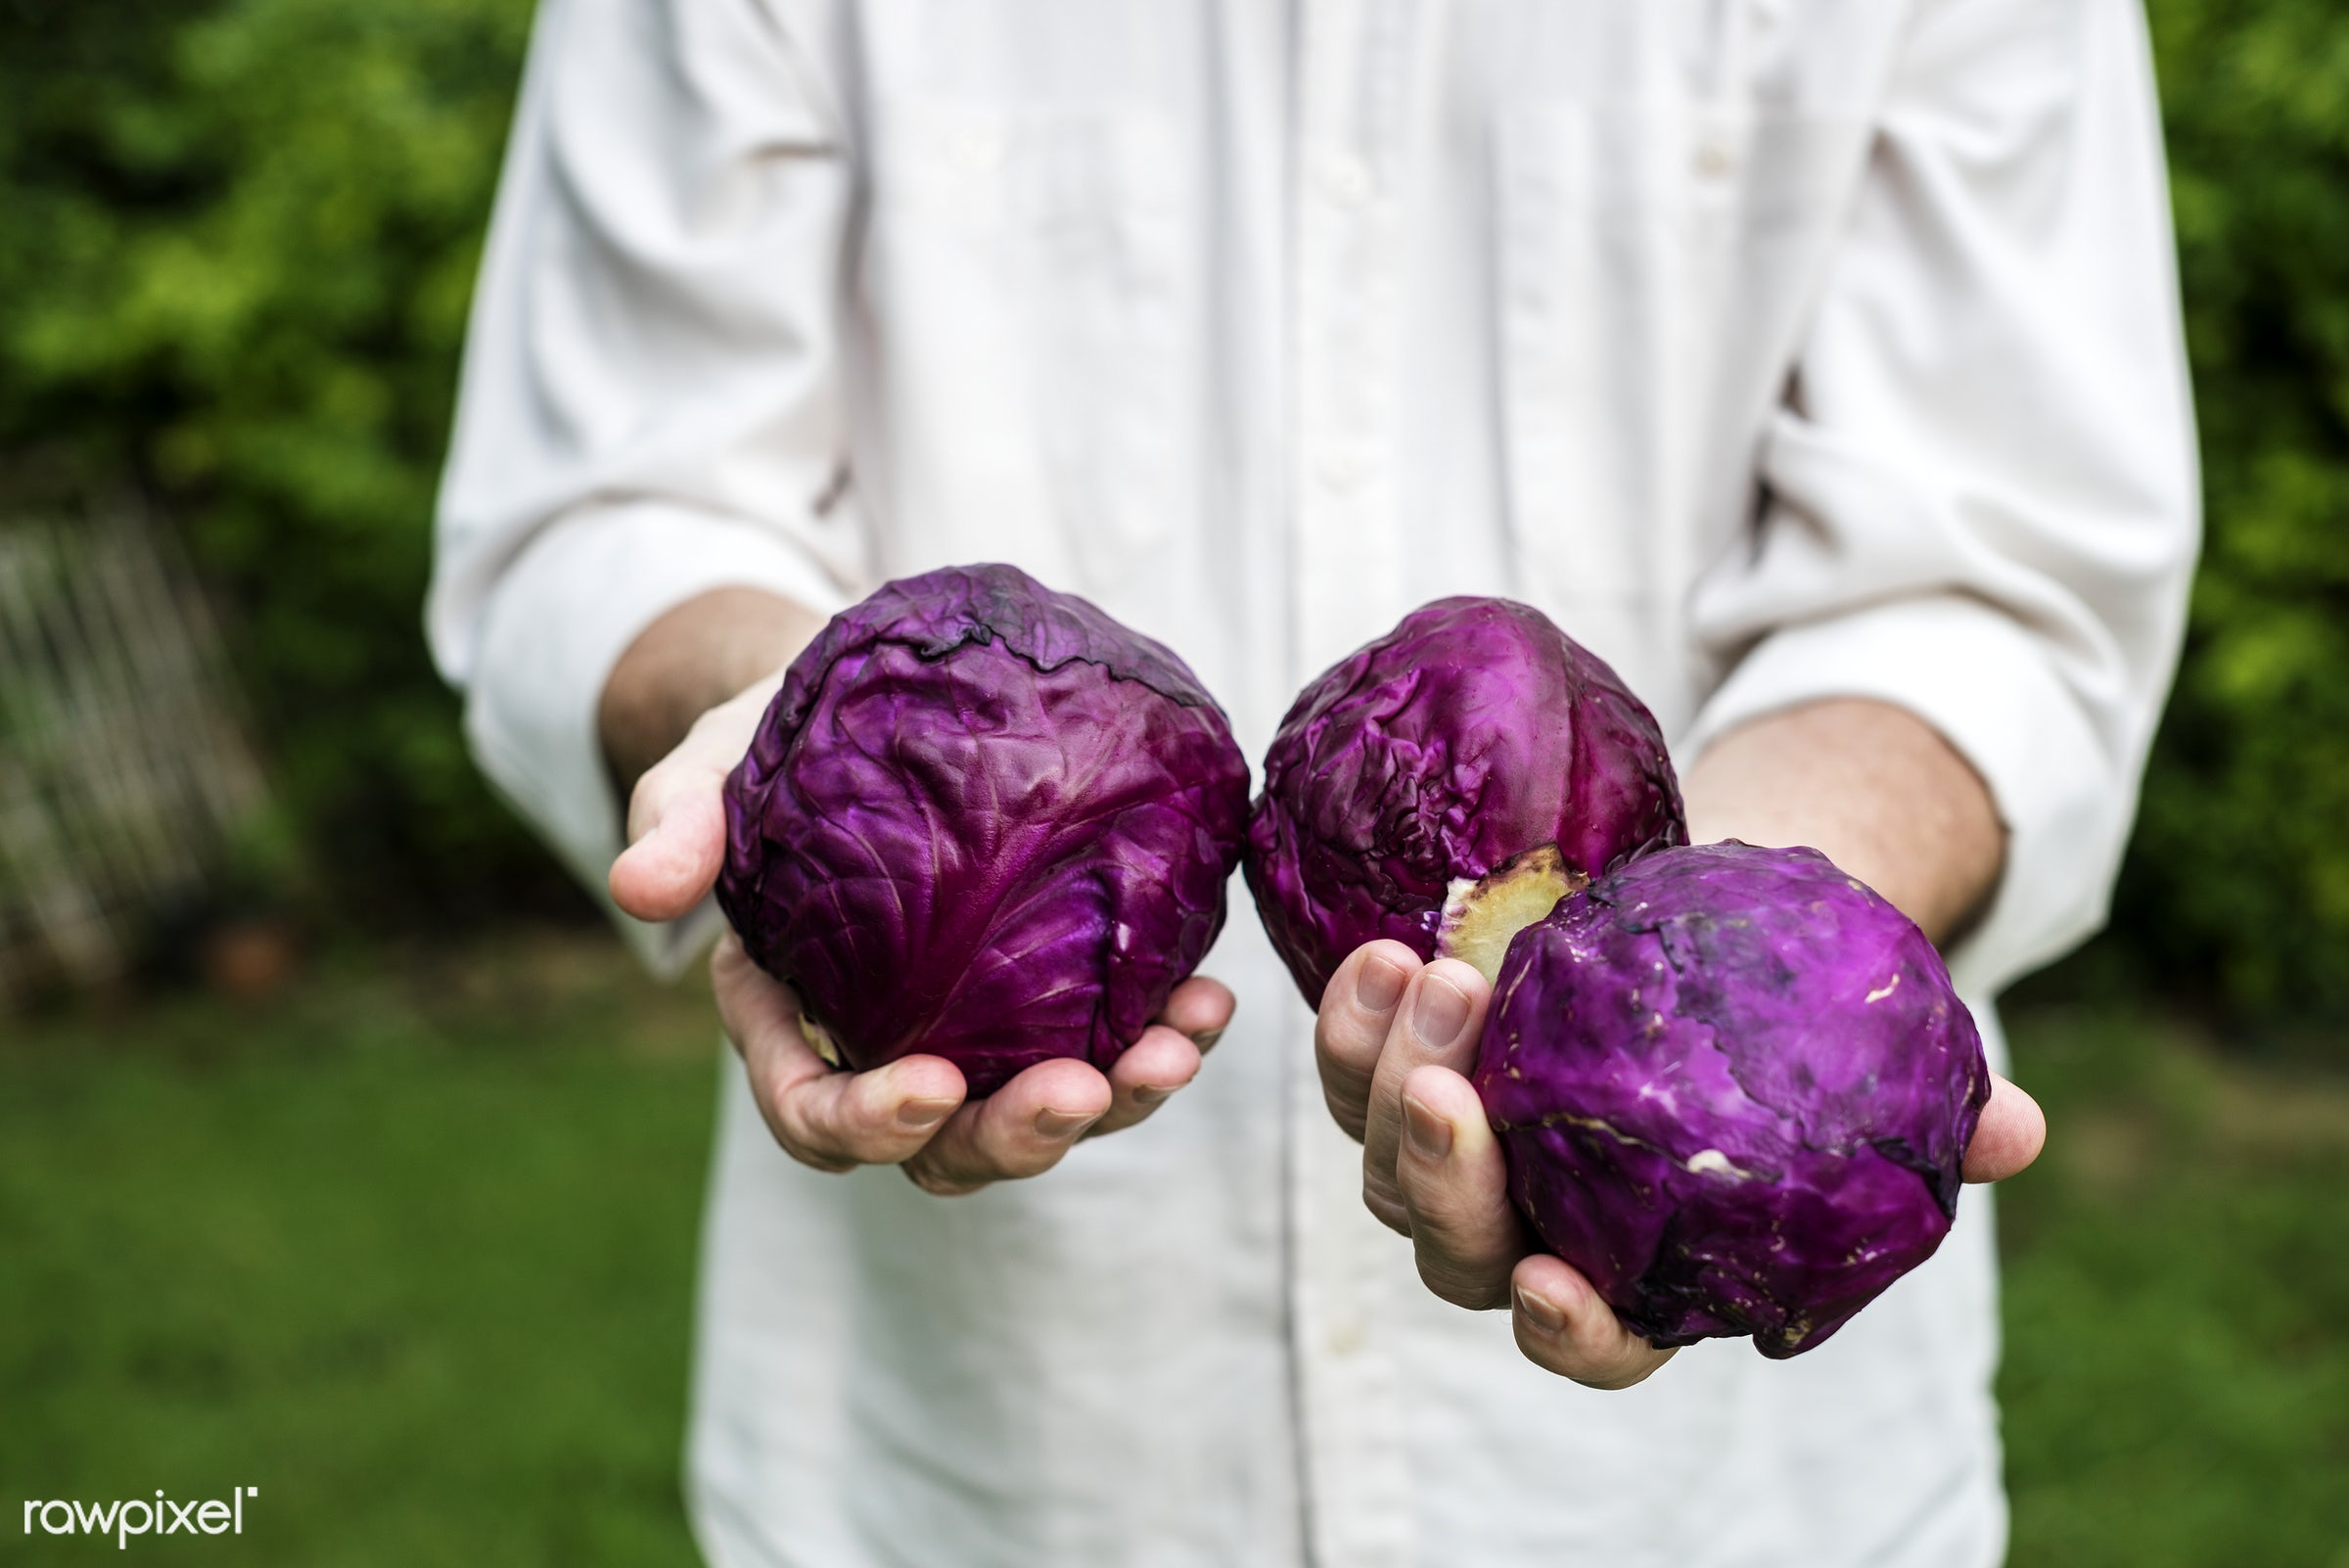 plant, raw, cuisine, holding, red cabbage, crop, nature, fresh, hands, pick, ingredient, cultivation, closeup, agriculture,...